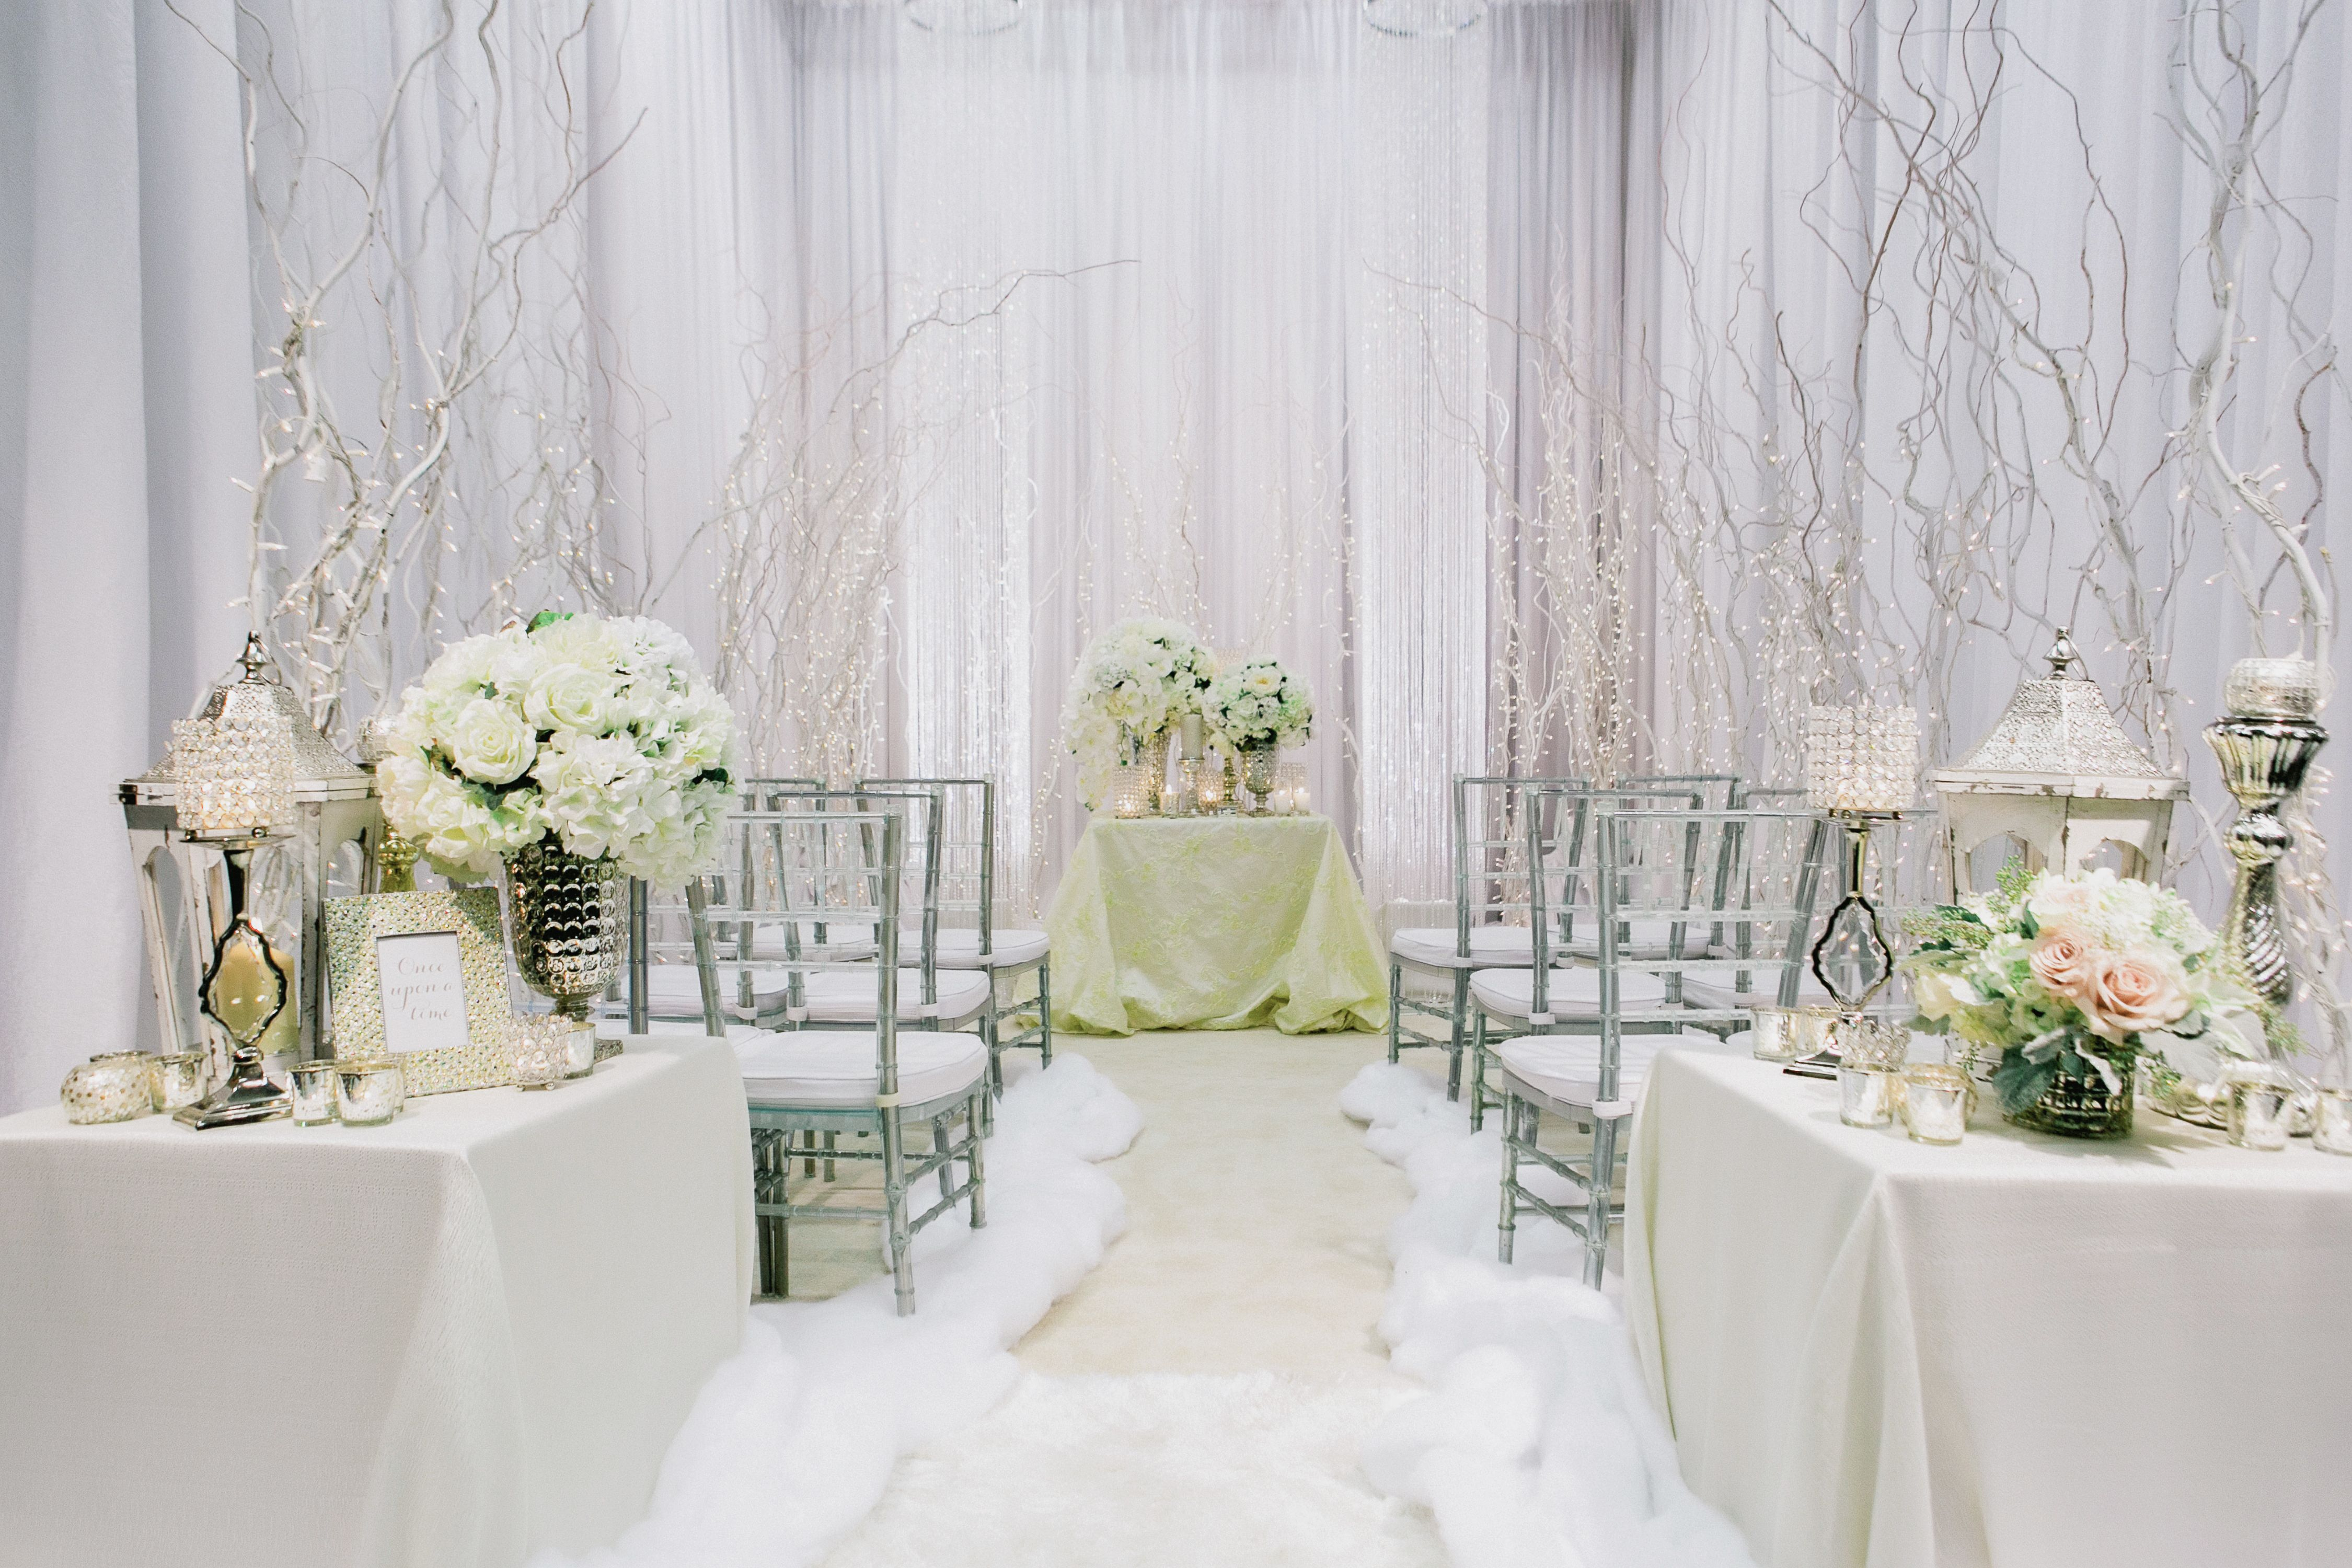 Use a Winter White Color Scheme | Pinterest | Wedding styles and ...